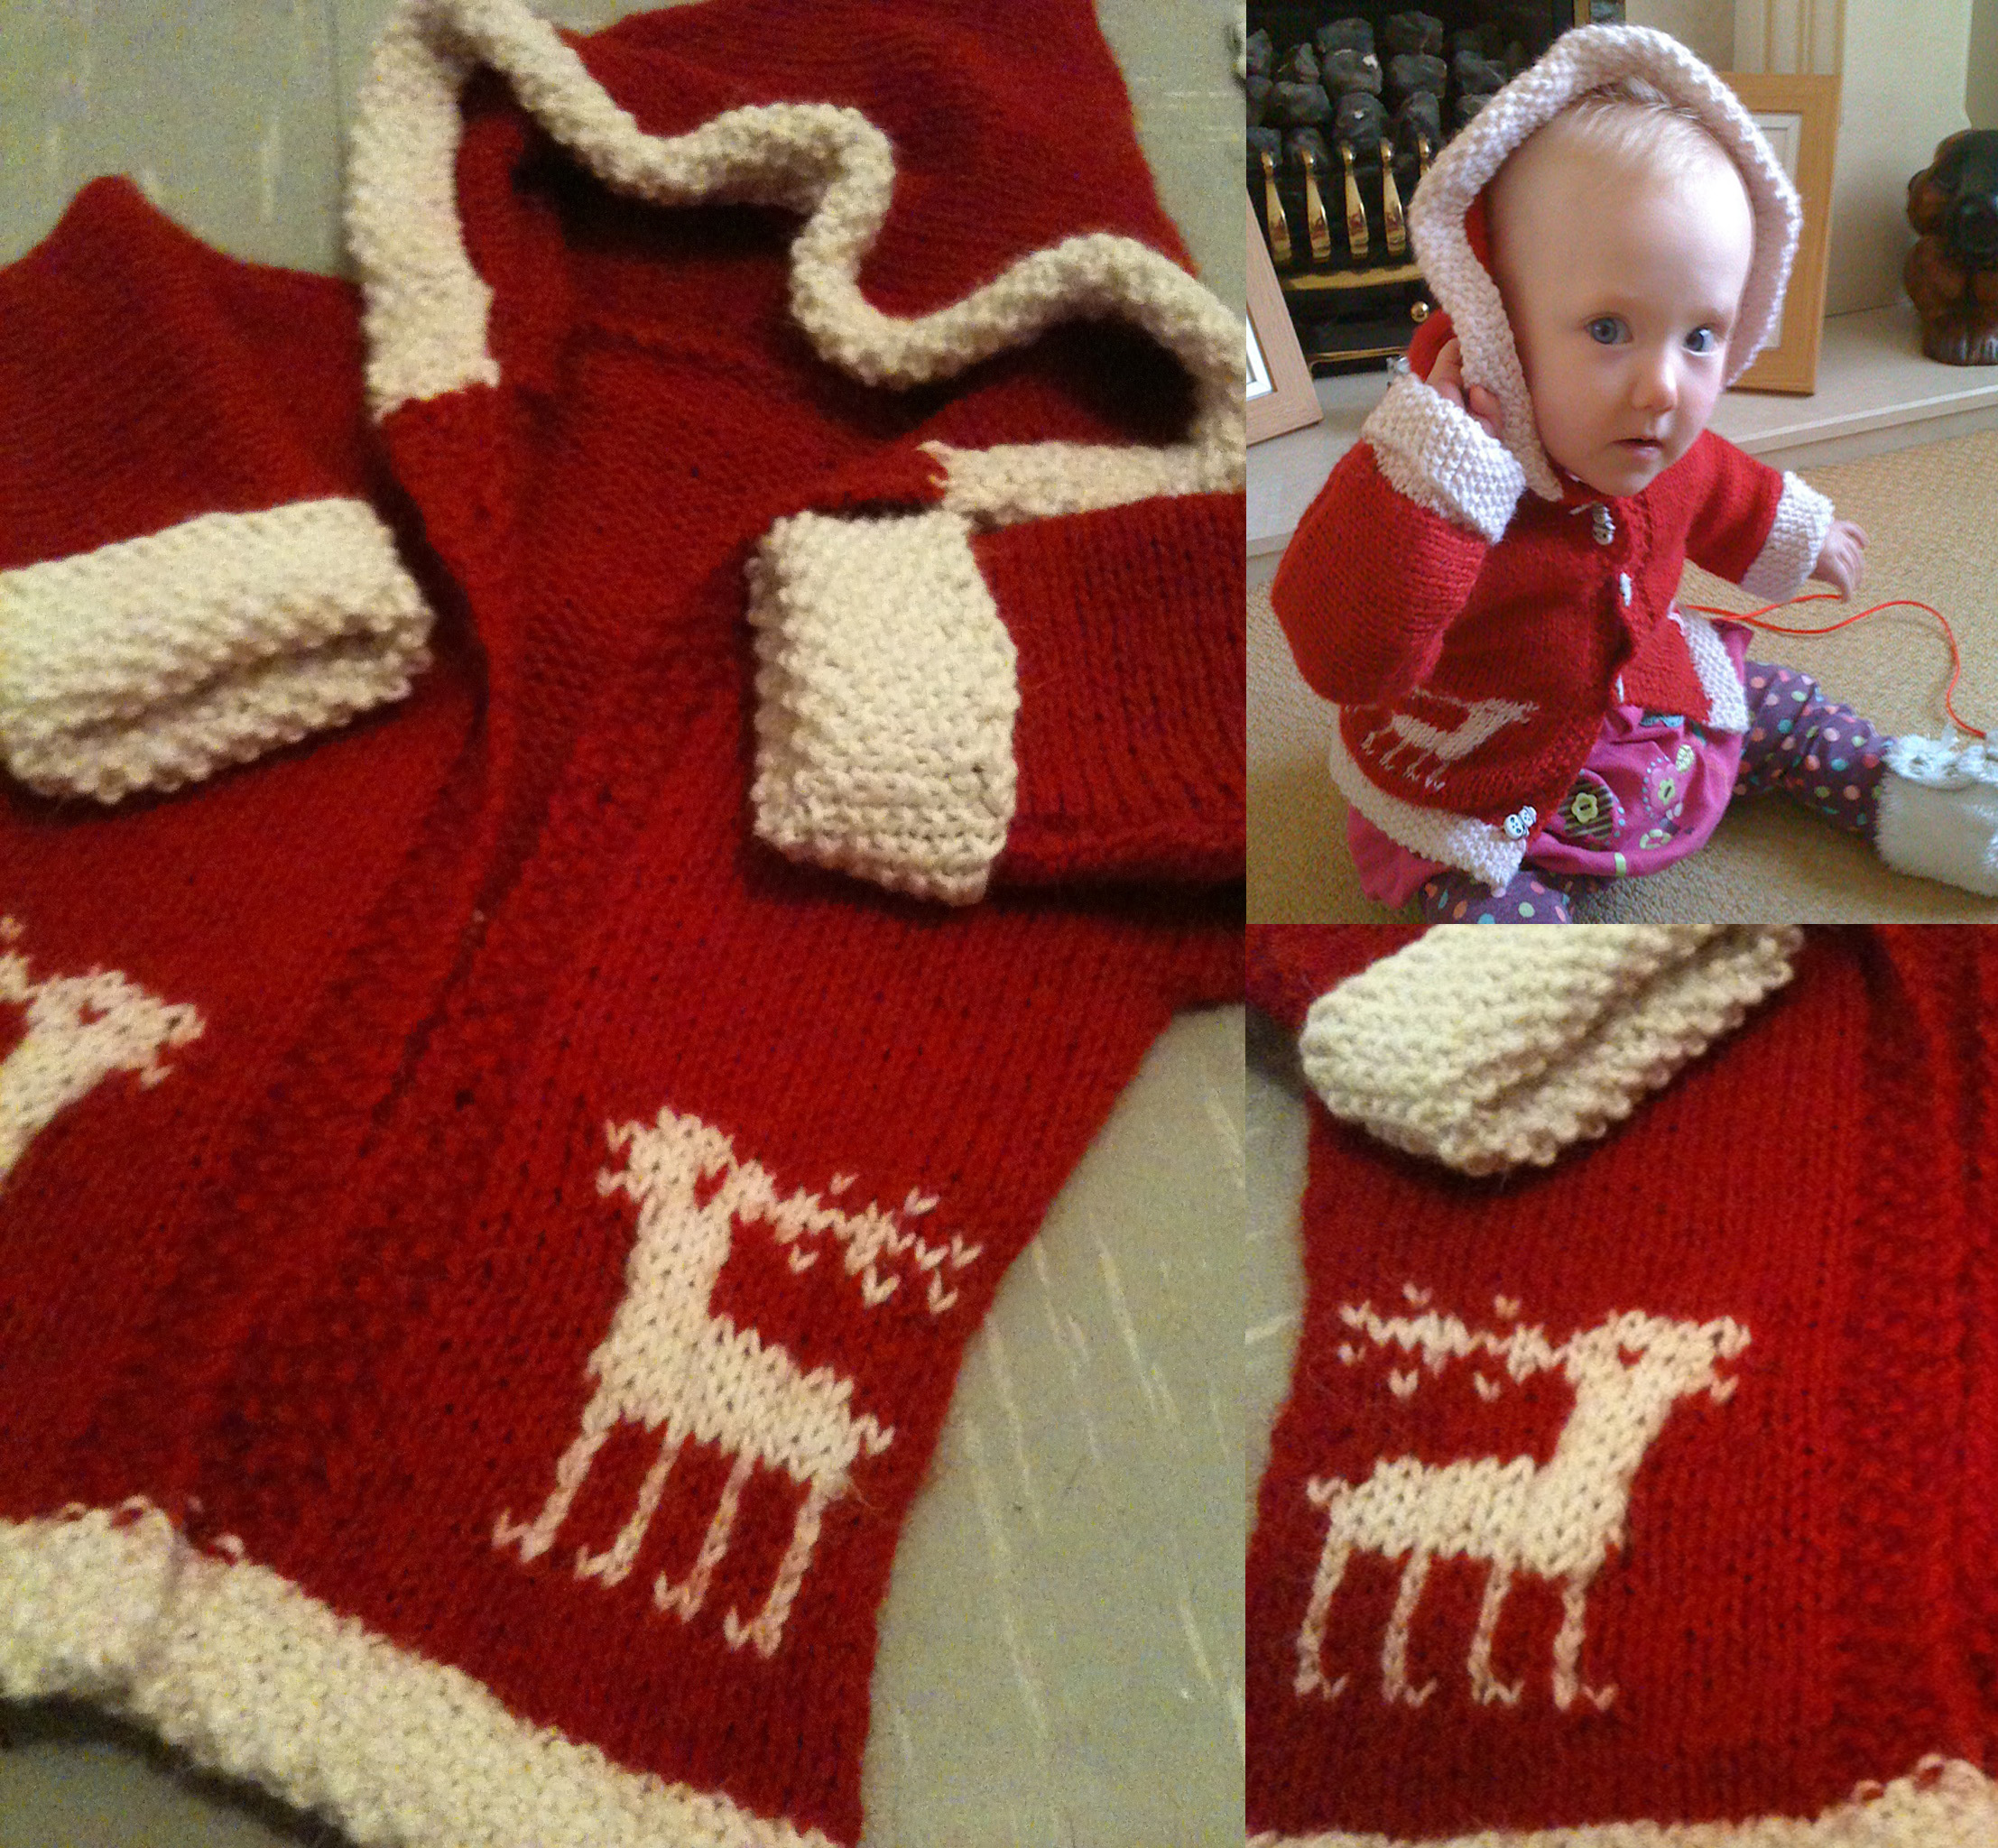 Christmas Jumper Knitting Patterns For Babies - Gray Cardigan Sweater